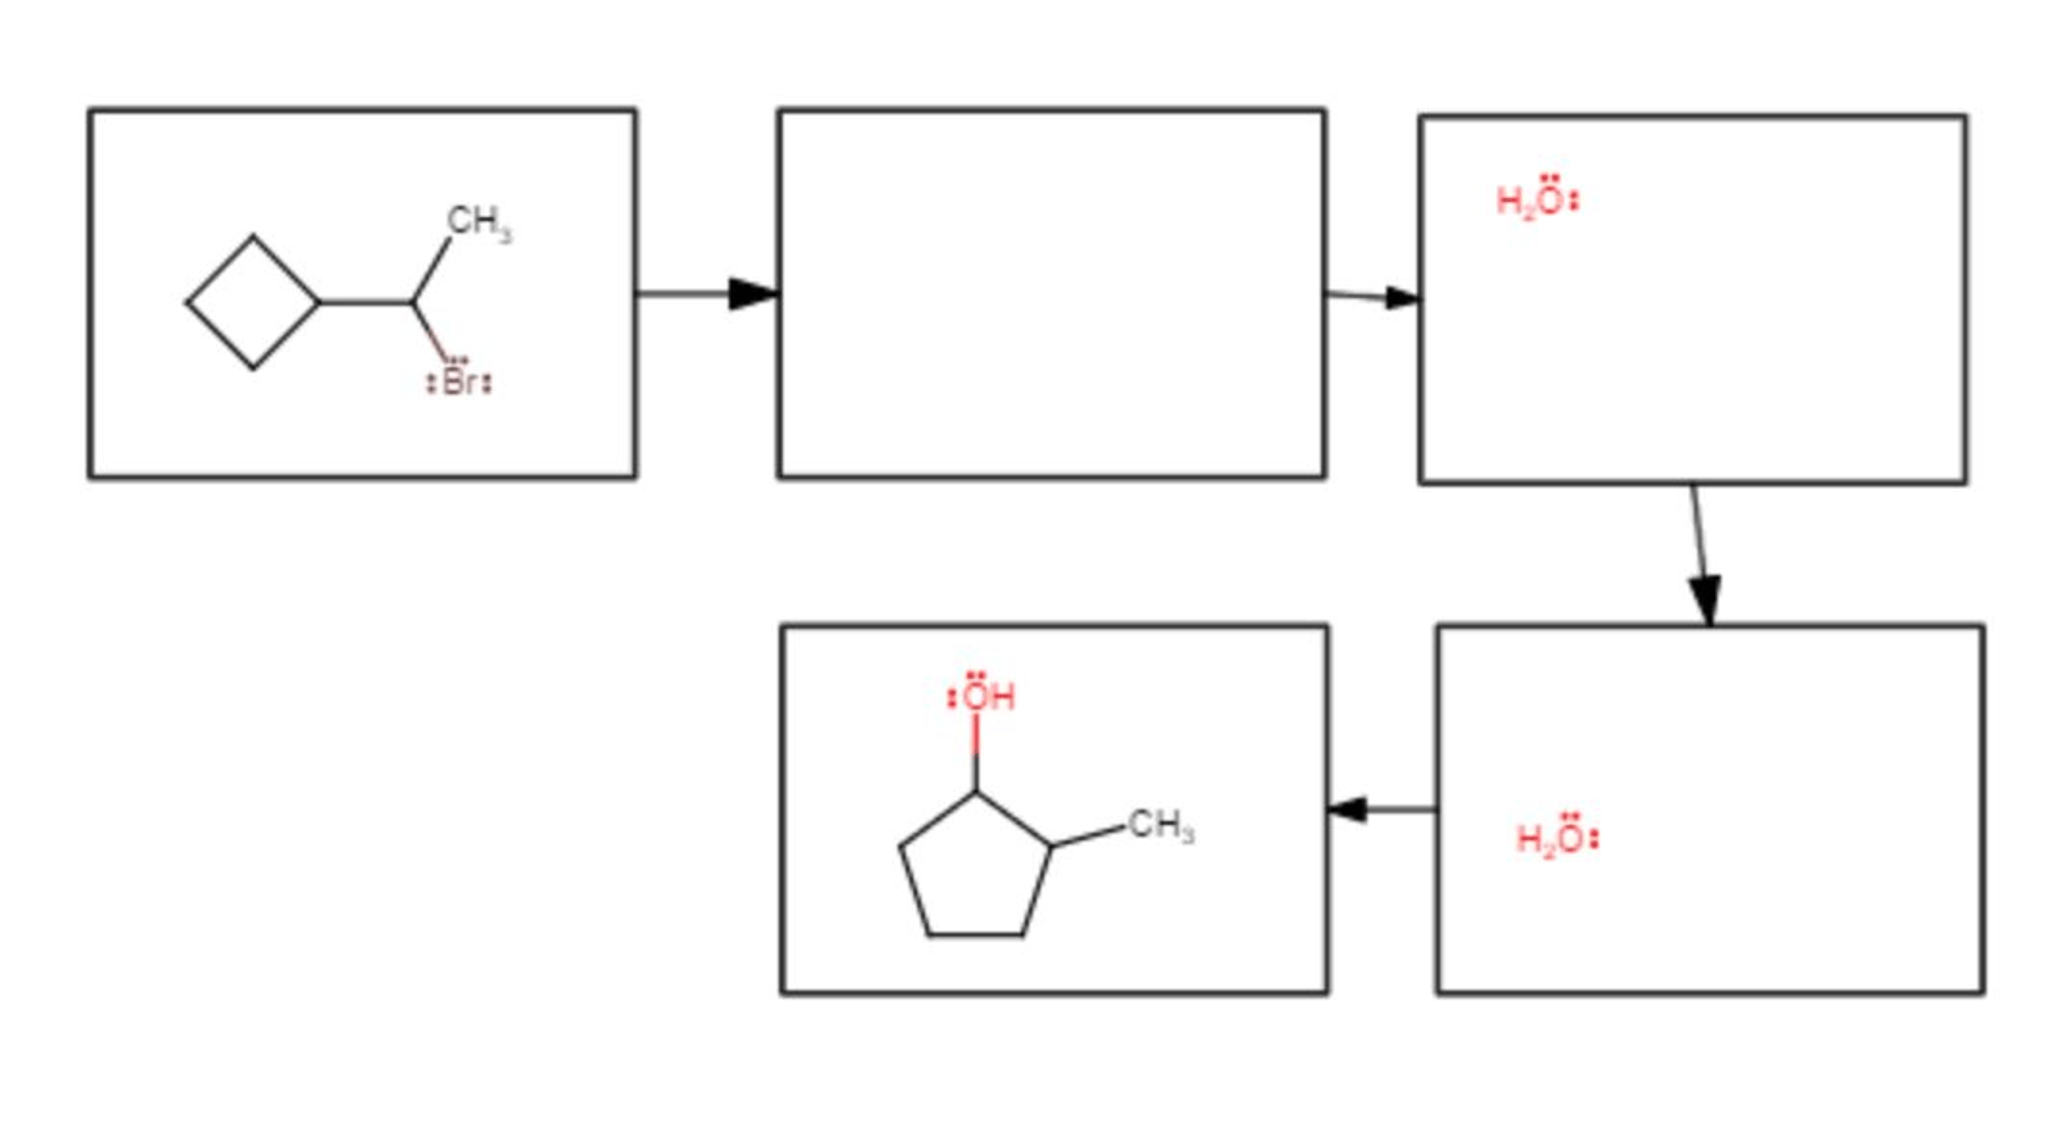 Solved: Draw A Reasonable Mechanism For This Reaction